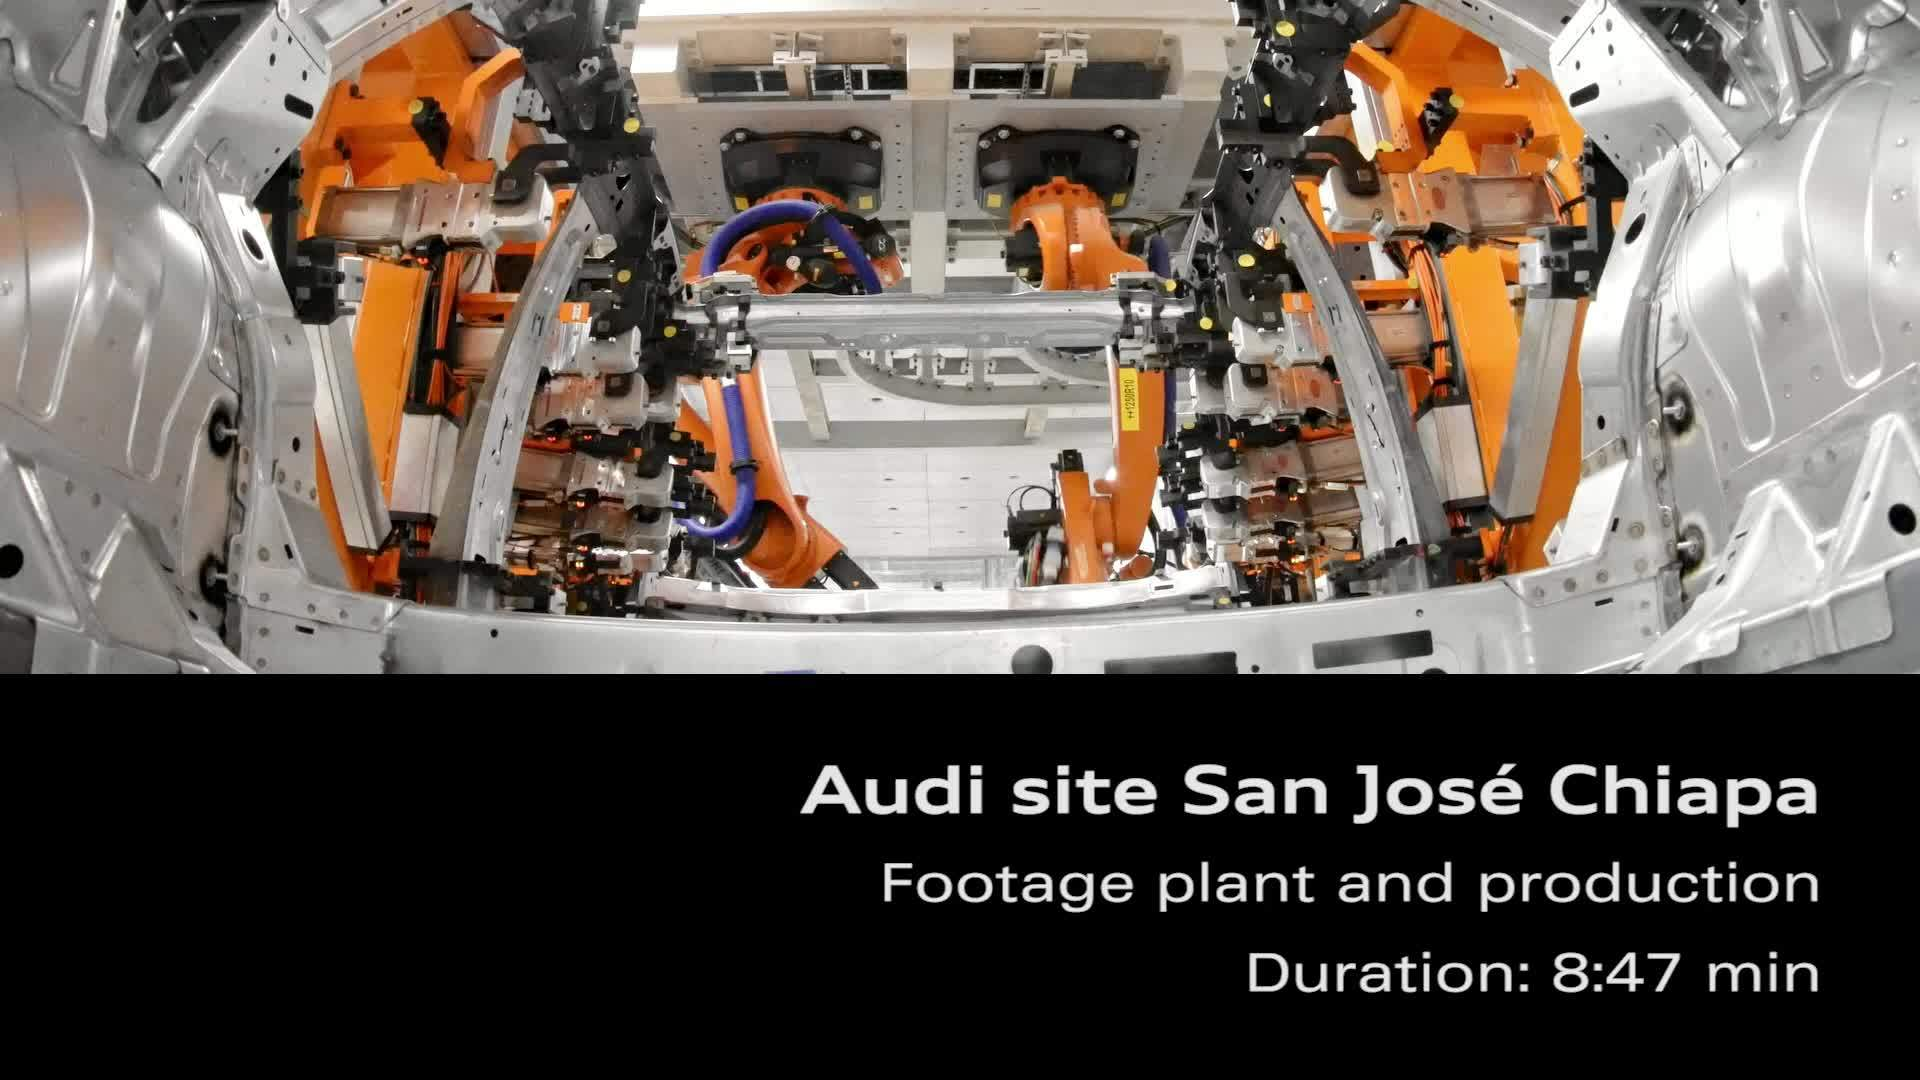 Audi site Mexico – Footage